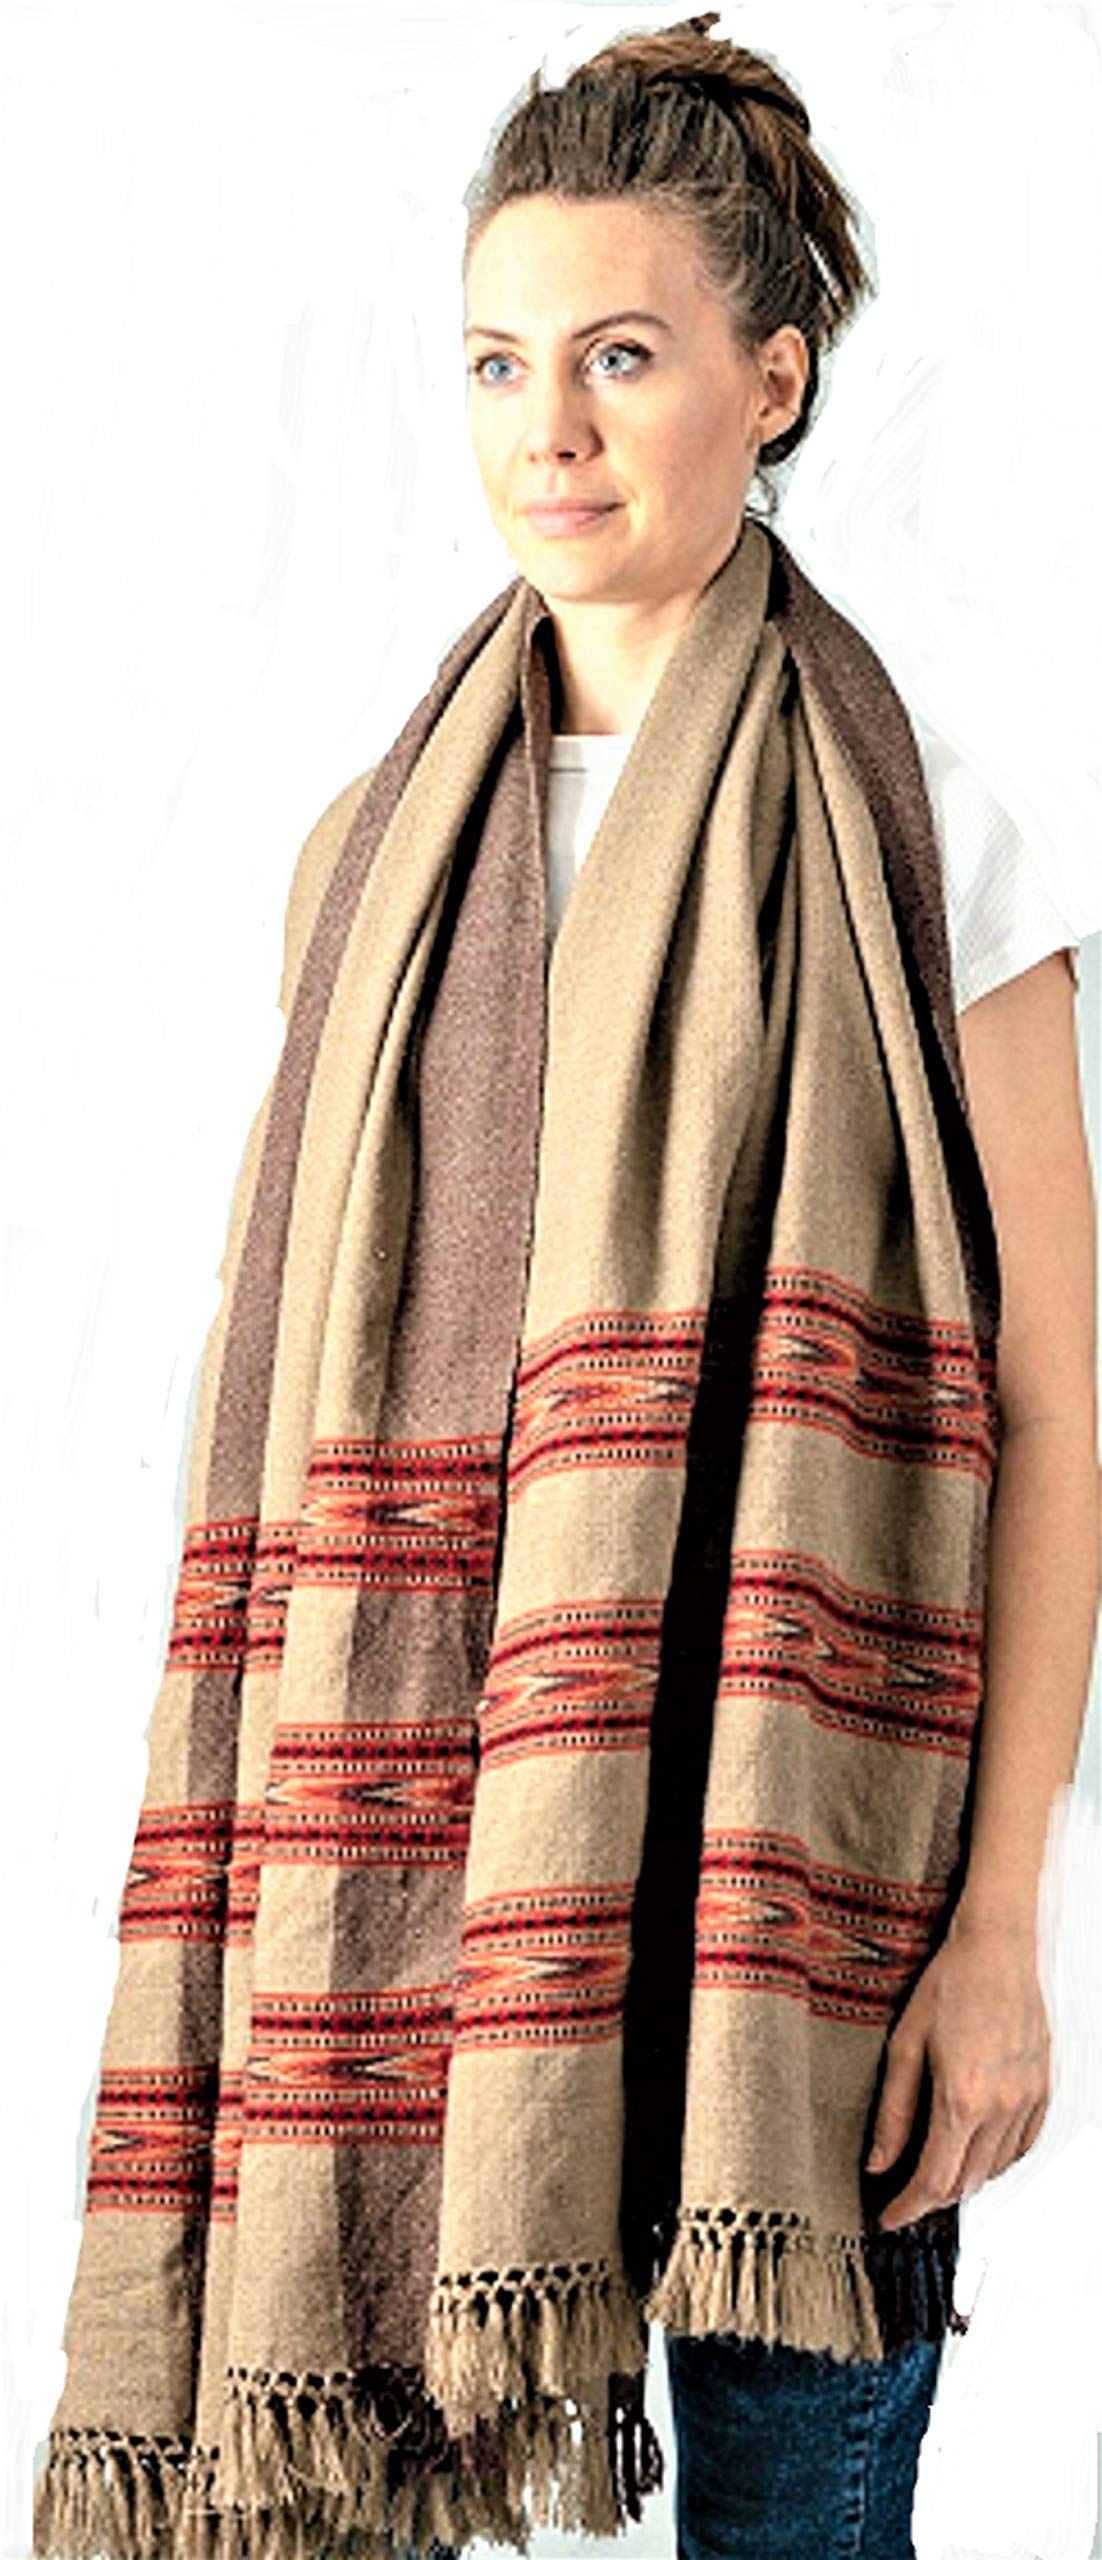 Meditation Shawl by Om Shanti Crafts | Prayer Shawl, Buddha Blanket, Oversize Scarf Wool Wrap for Daily Meditation, Unisex (Extra Large 7.5'x3.5') (Brown)